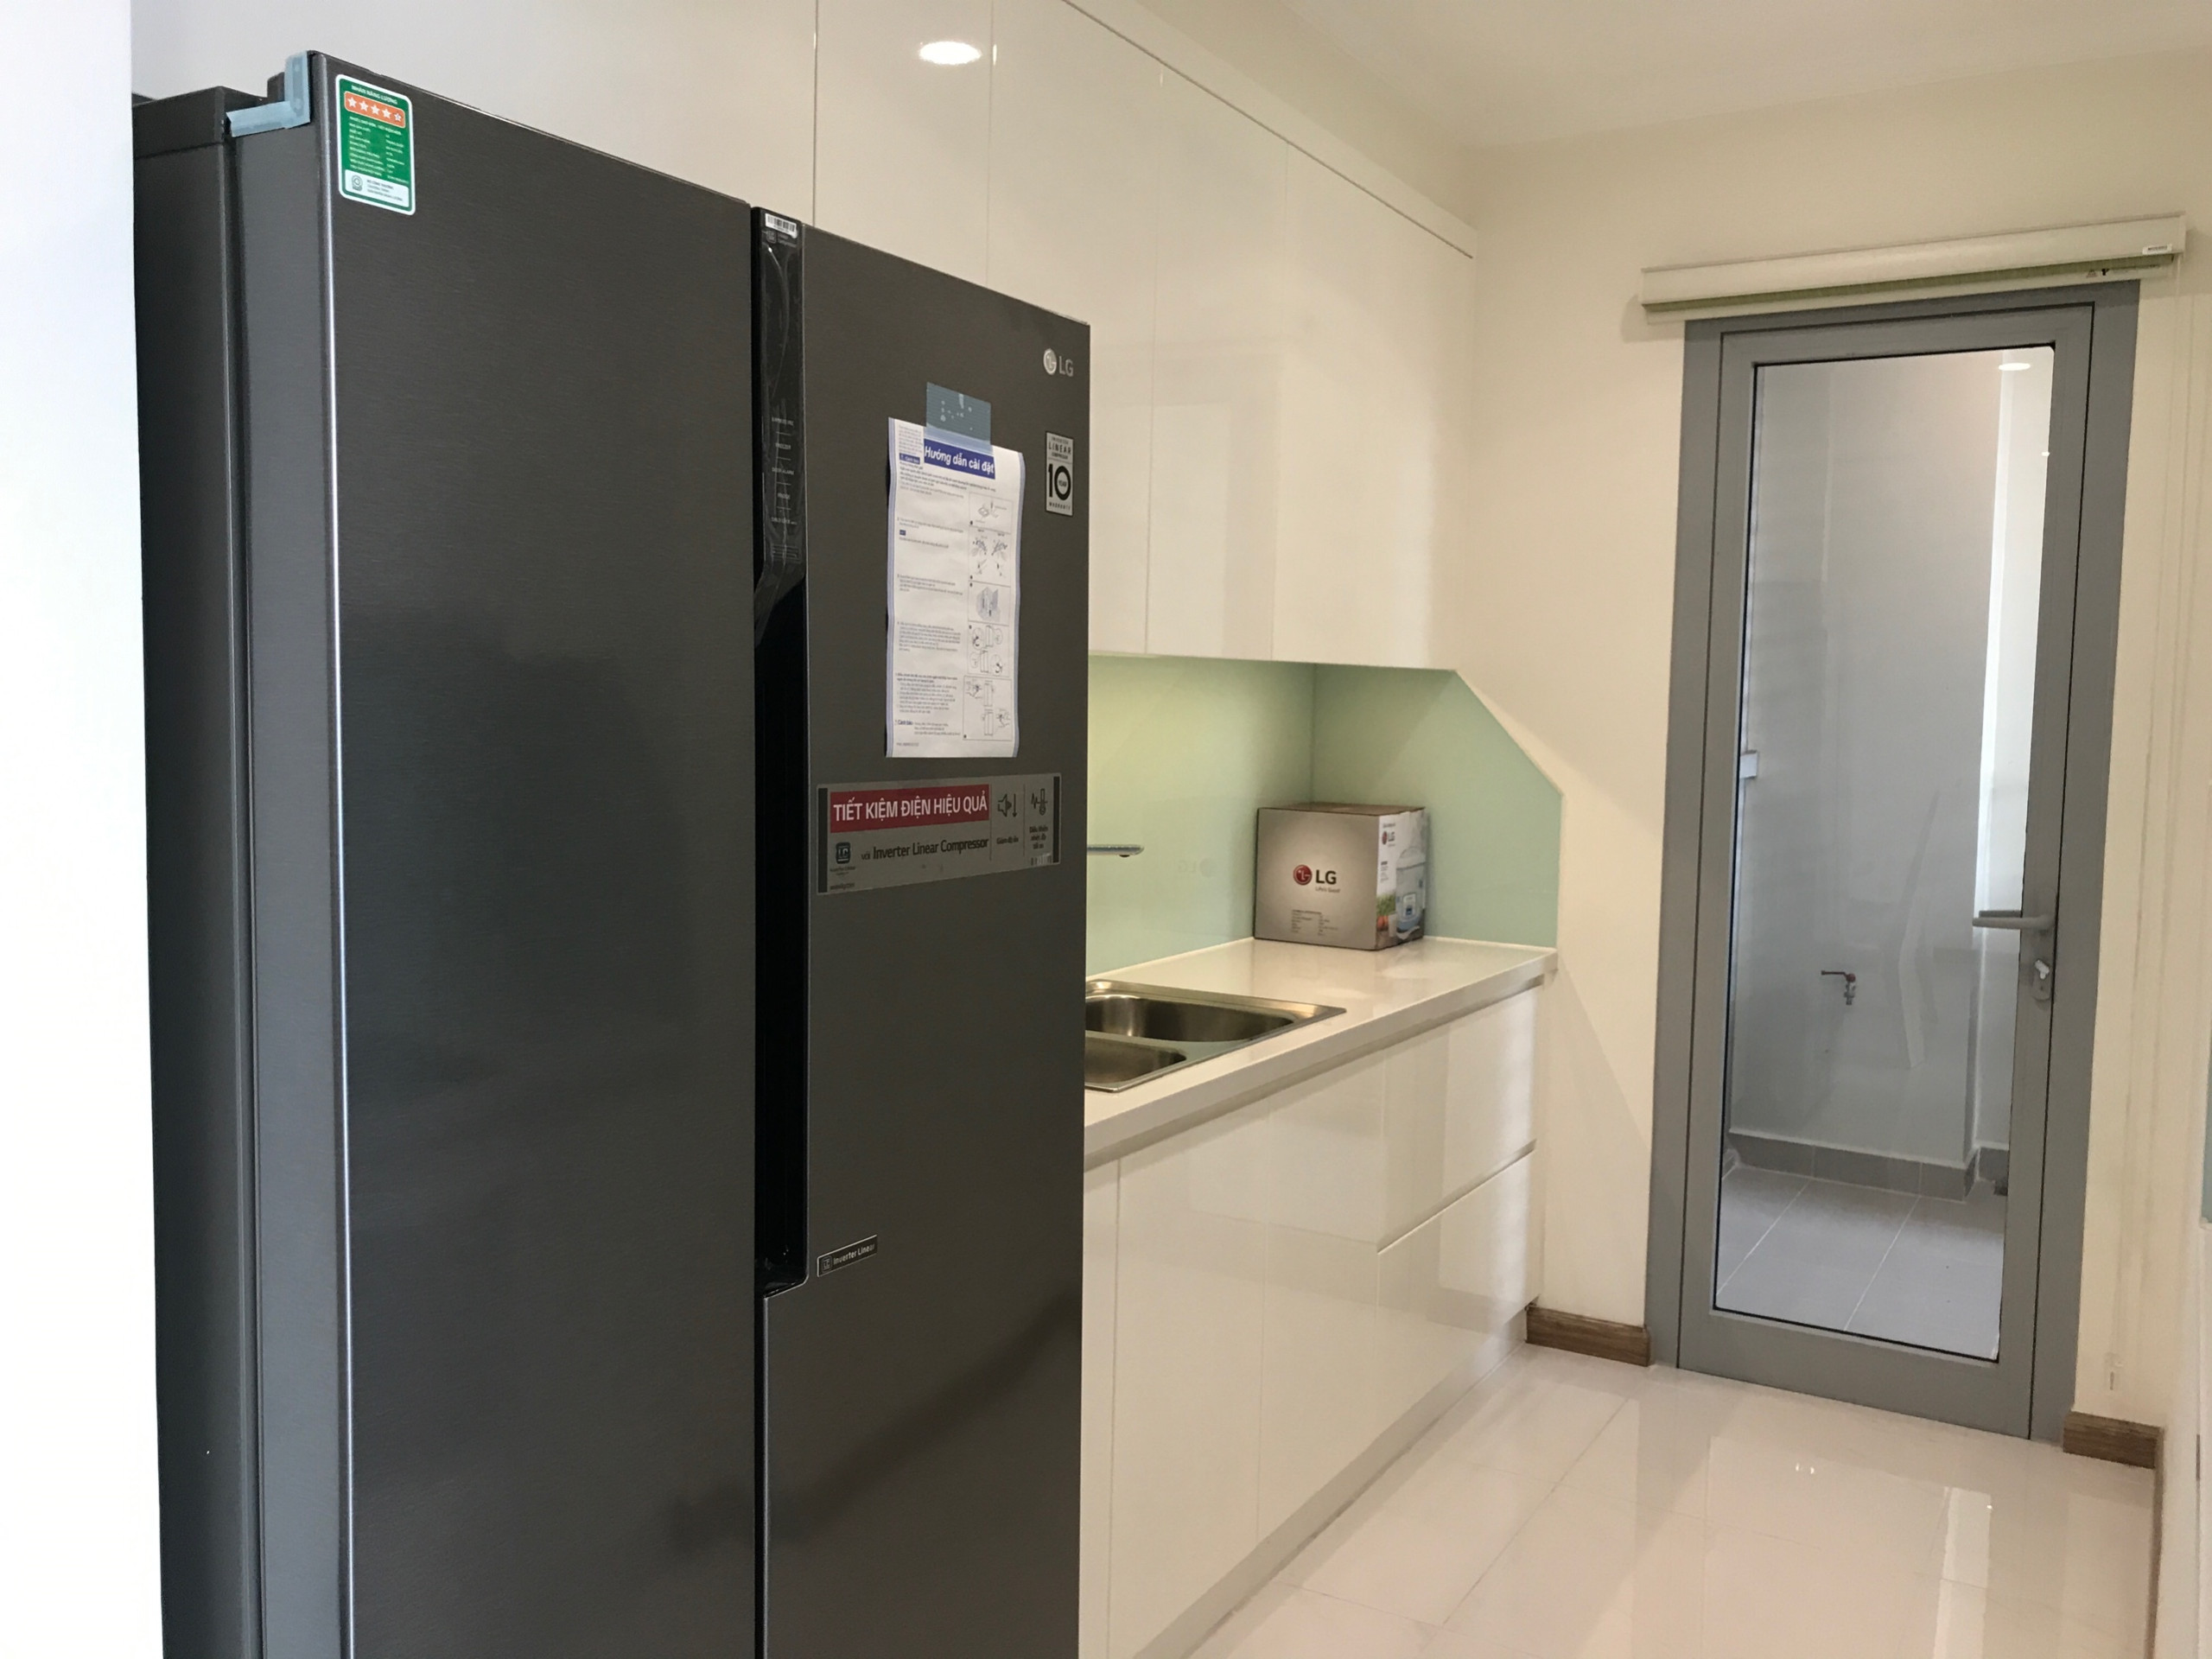 apartment for rent in Vinhomes Central Park Binh Thanh  District BT105L3321 BT105L3320 BT105L1626 BT105L1577 BT105L3792 BT105L3793 BT105L3794 BT105L3795 BT105L3796 (6)